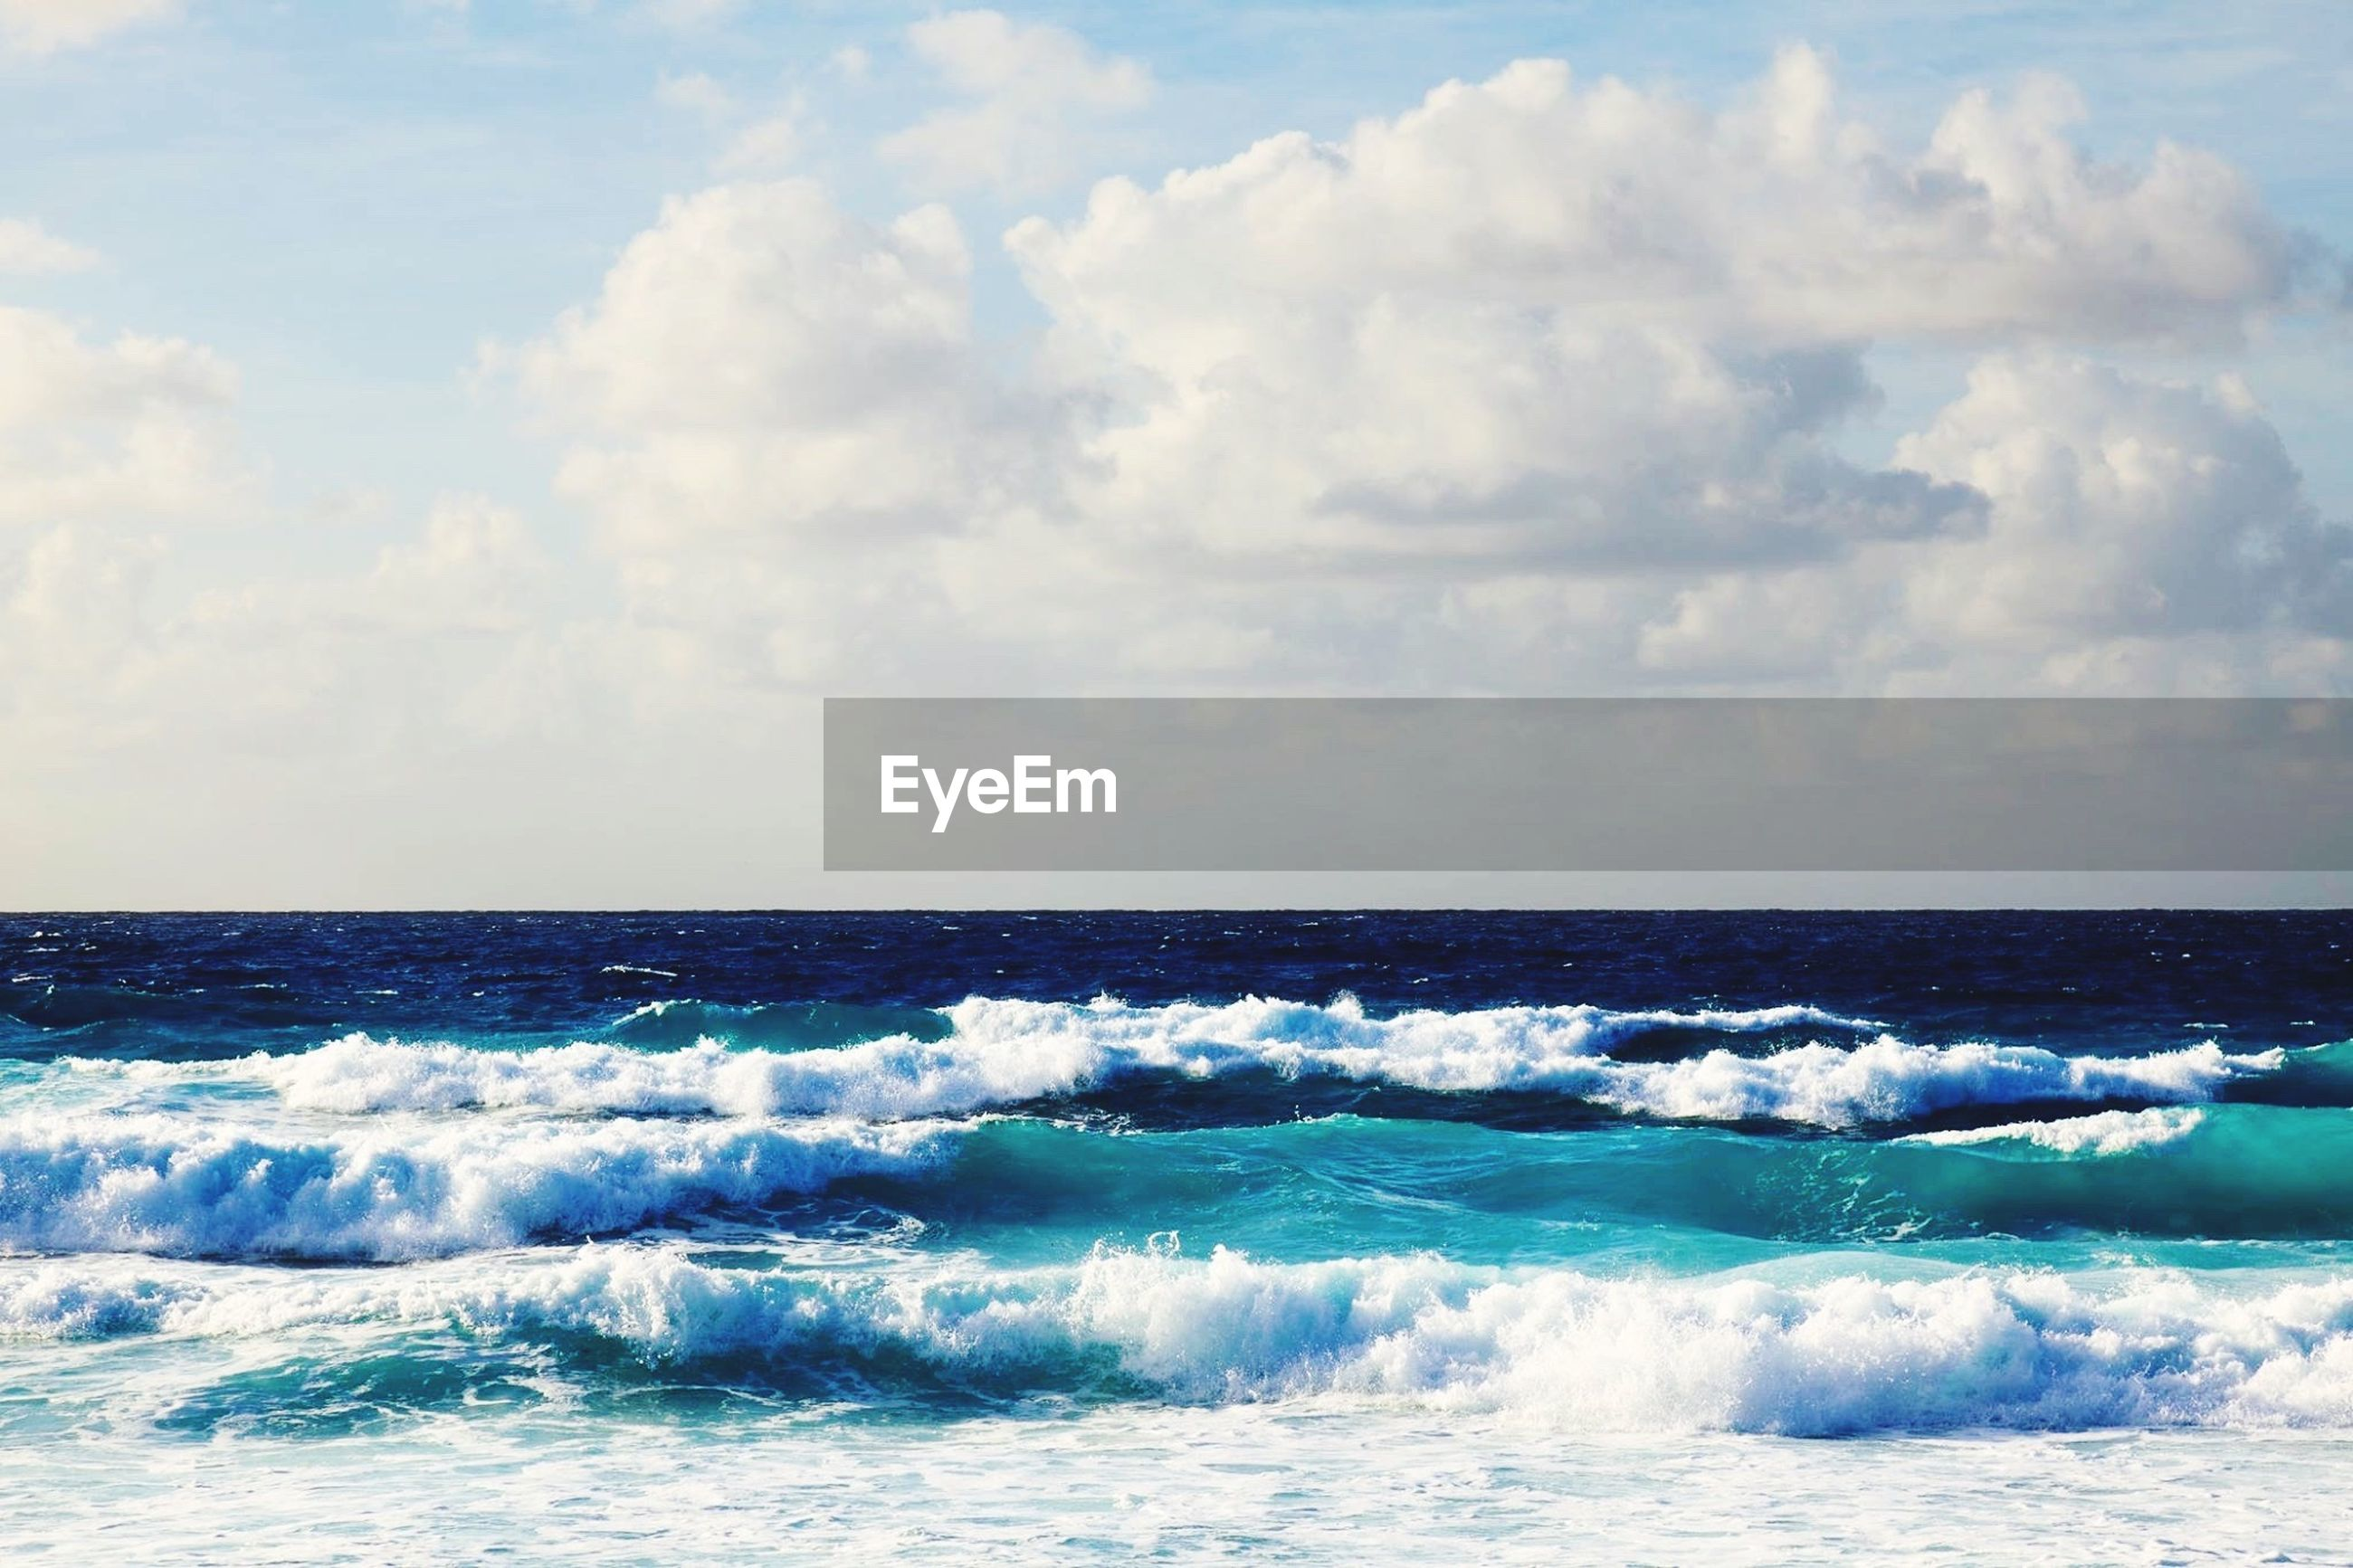 sea, water, horizon over water, wave, surf, sky, motion, scenics, beauty in nature, waterfront, splashing, nature, cloud - sky, power in nature, blue, seascape, tranquil scene, idyllic, beach, cloudy